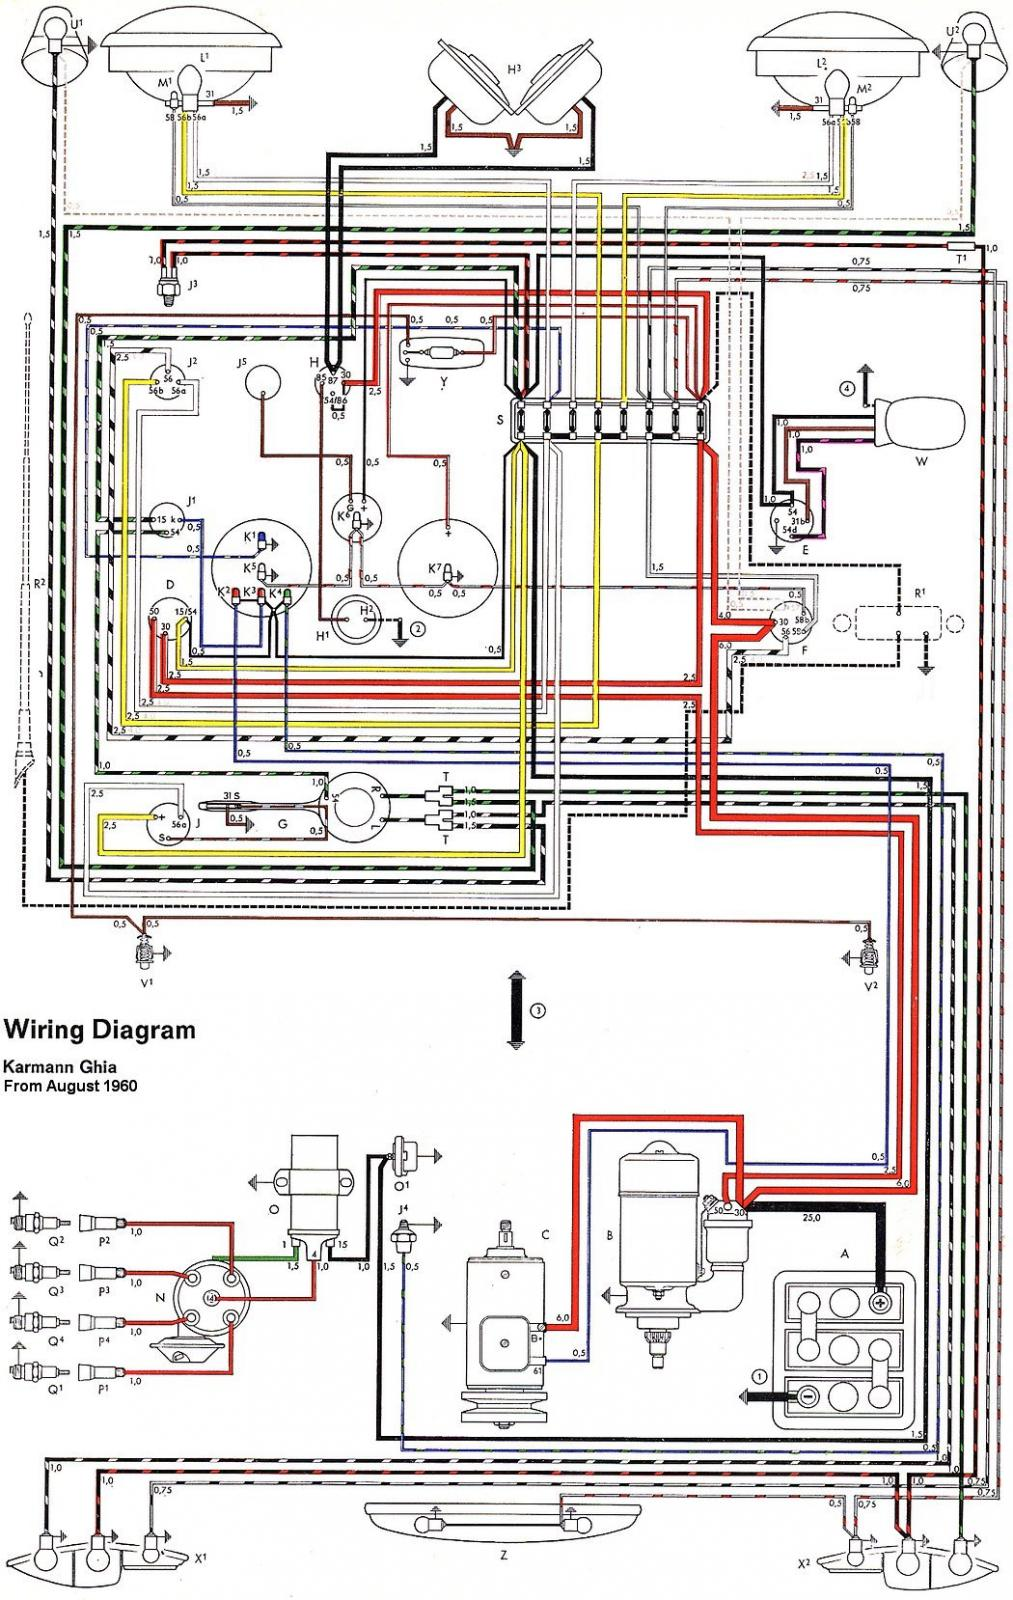 Vw 009 Breakerless Ignition Wiring Diagram Manual E Books Mallory 75 Libraryimage May Have Been Reduced In Size Click Image